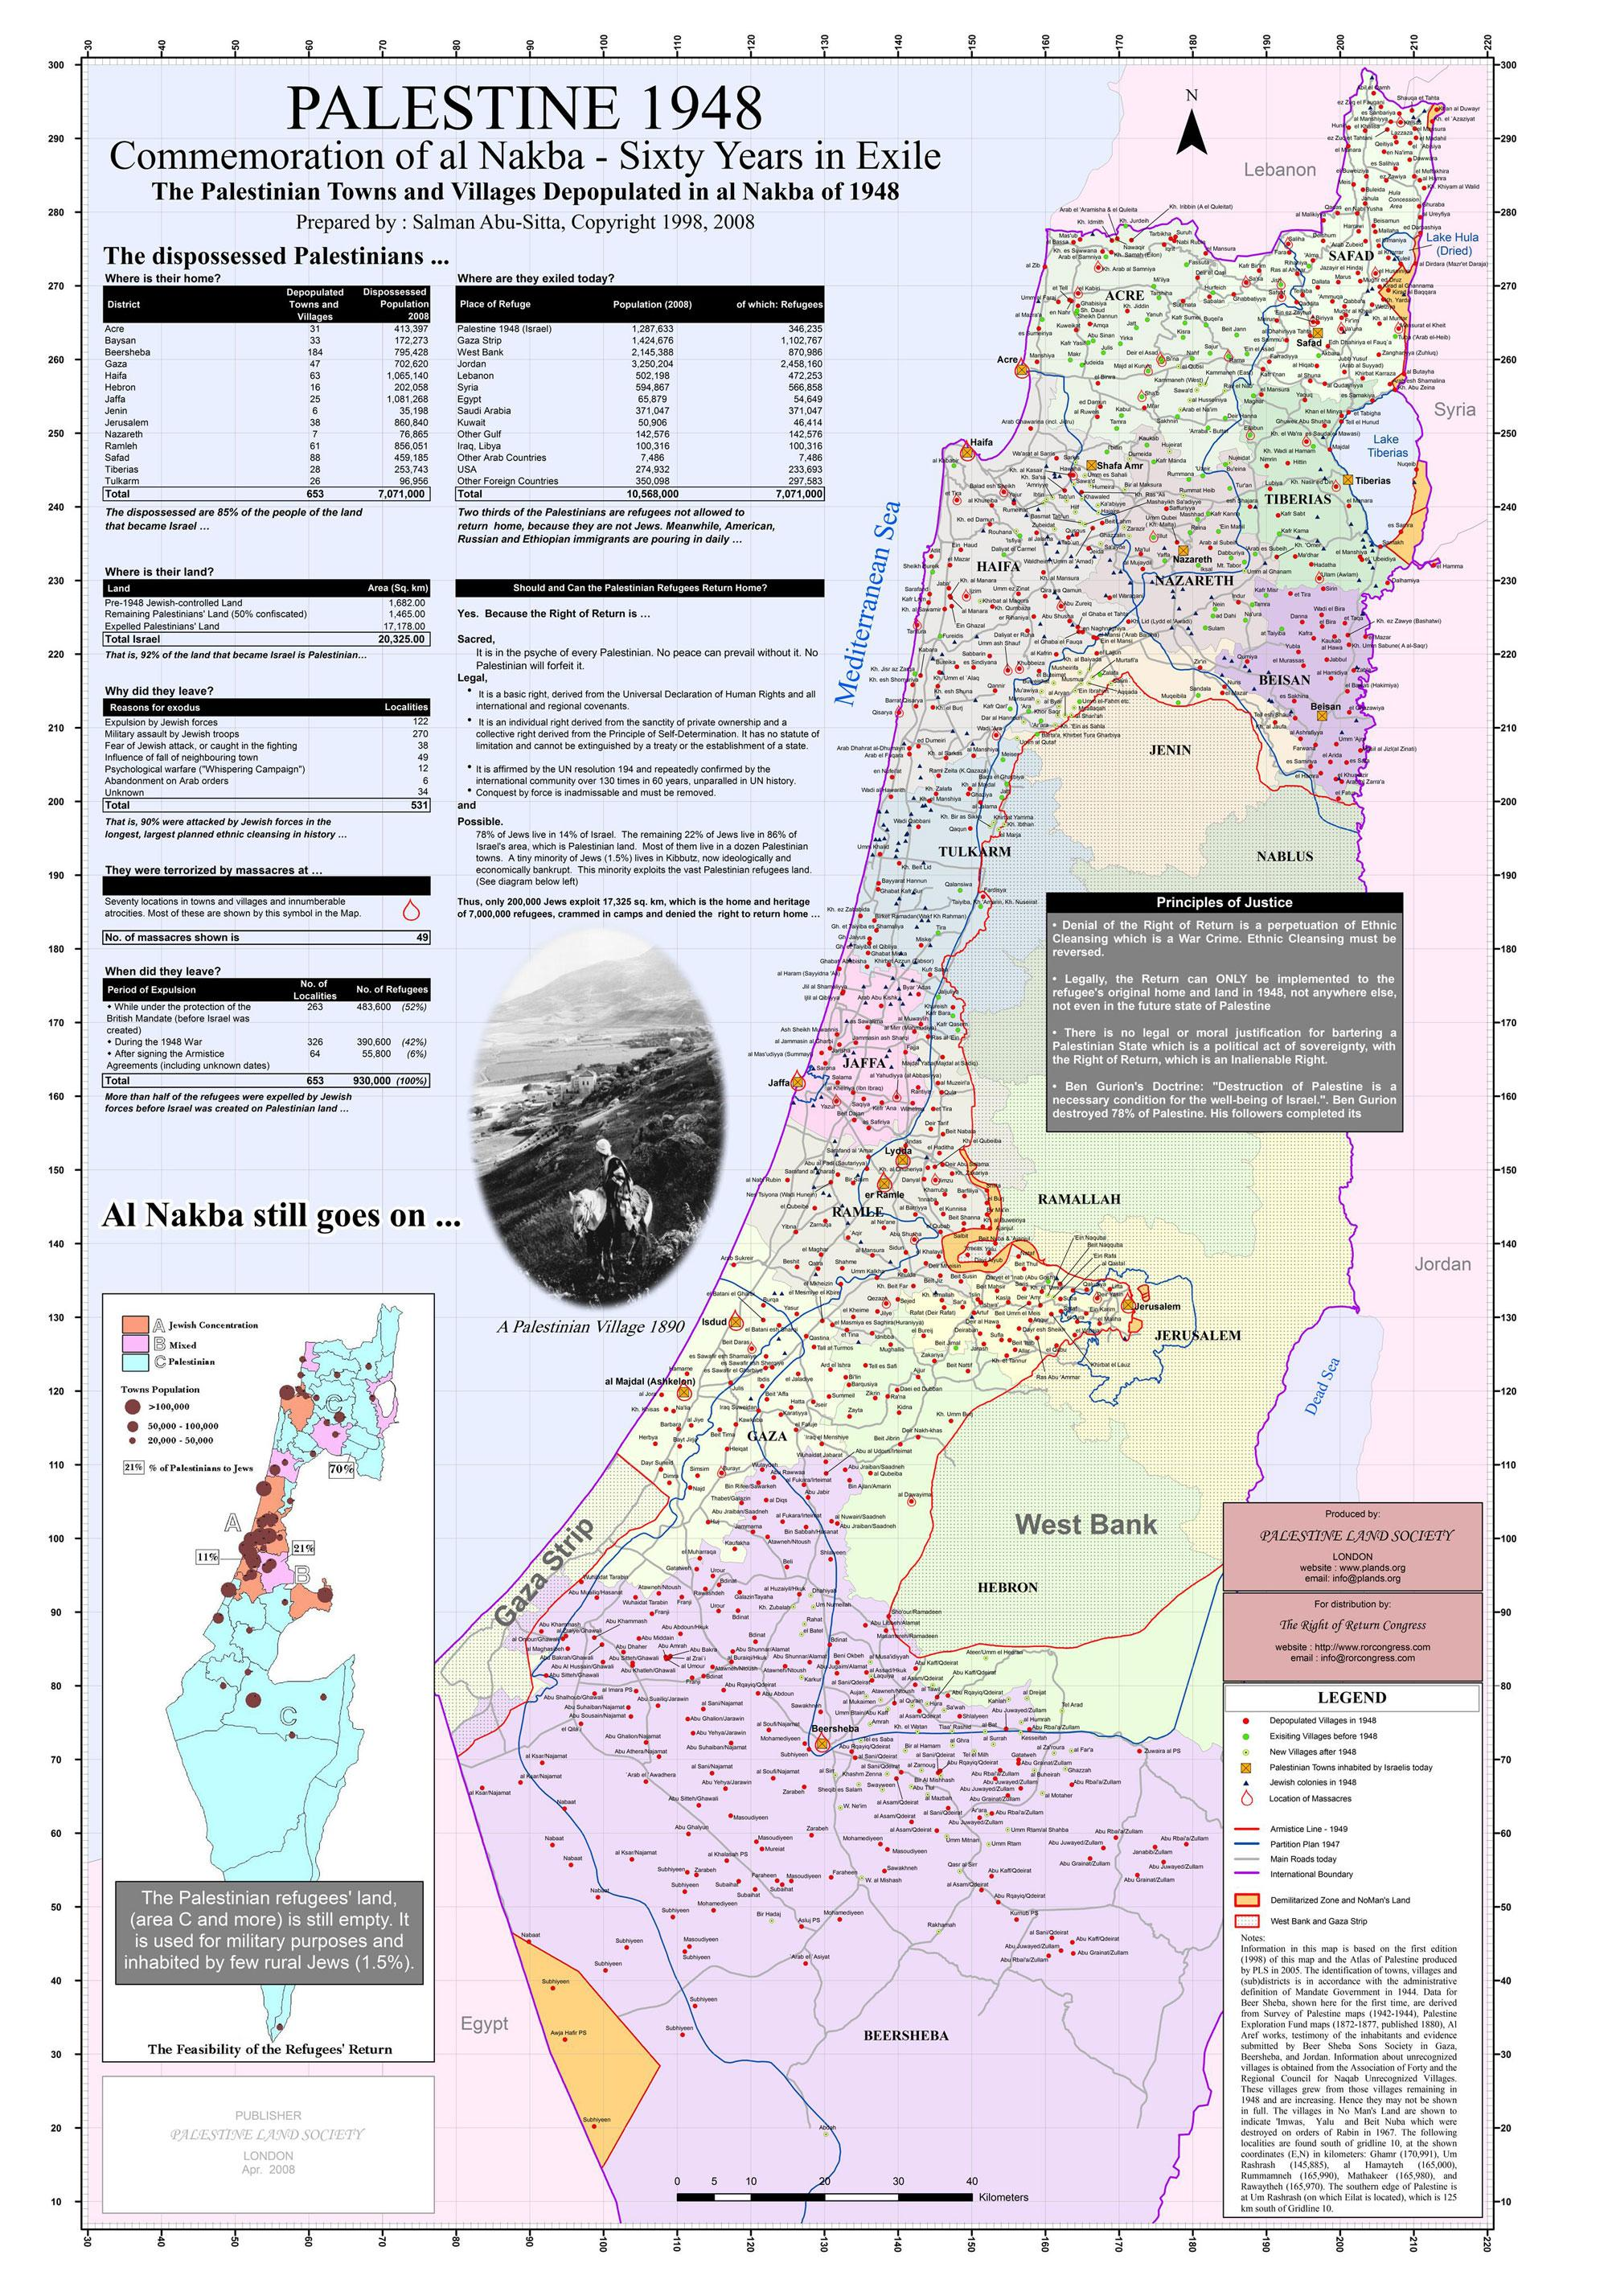 In commemoration of 60 years in exile, Abu Sitta mapped the dispossession of Palestinians and the depopulation of their villages during the ethnic cleansing of 1948. The map was produced in 1998. (Salman Abu Sitta/Palestine Land Society).